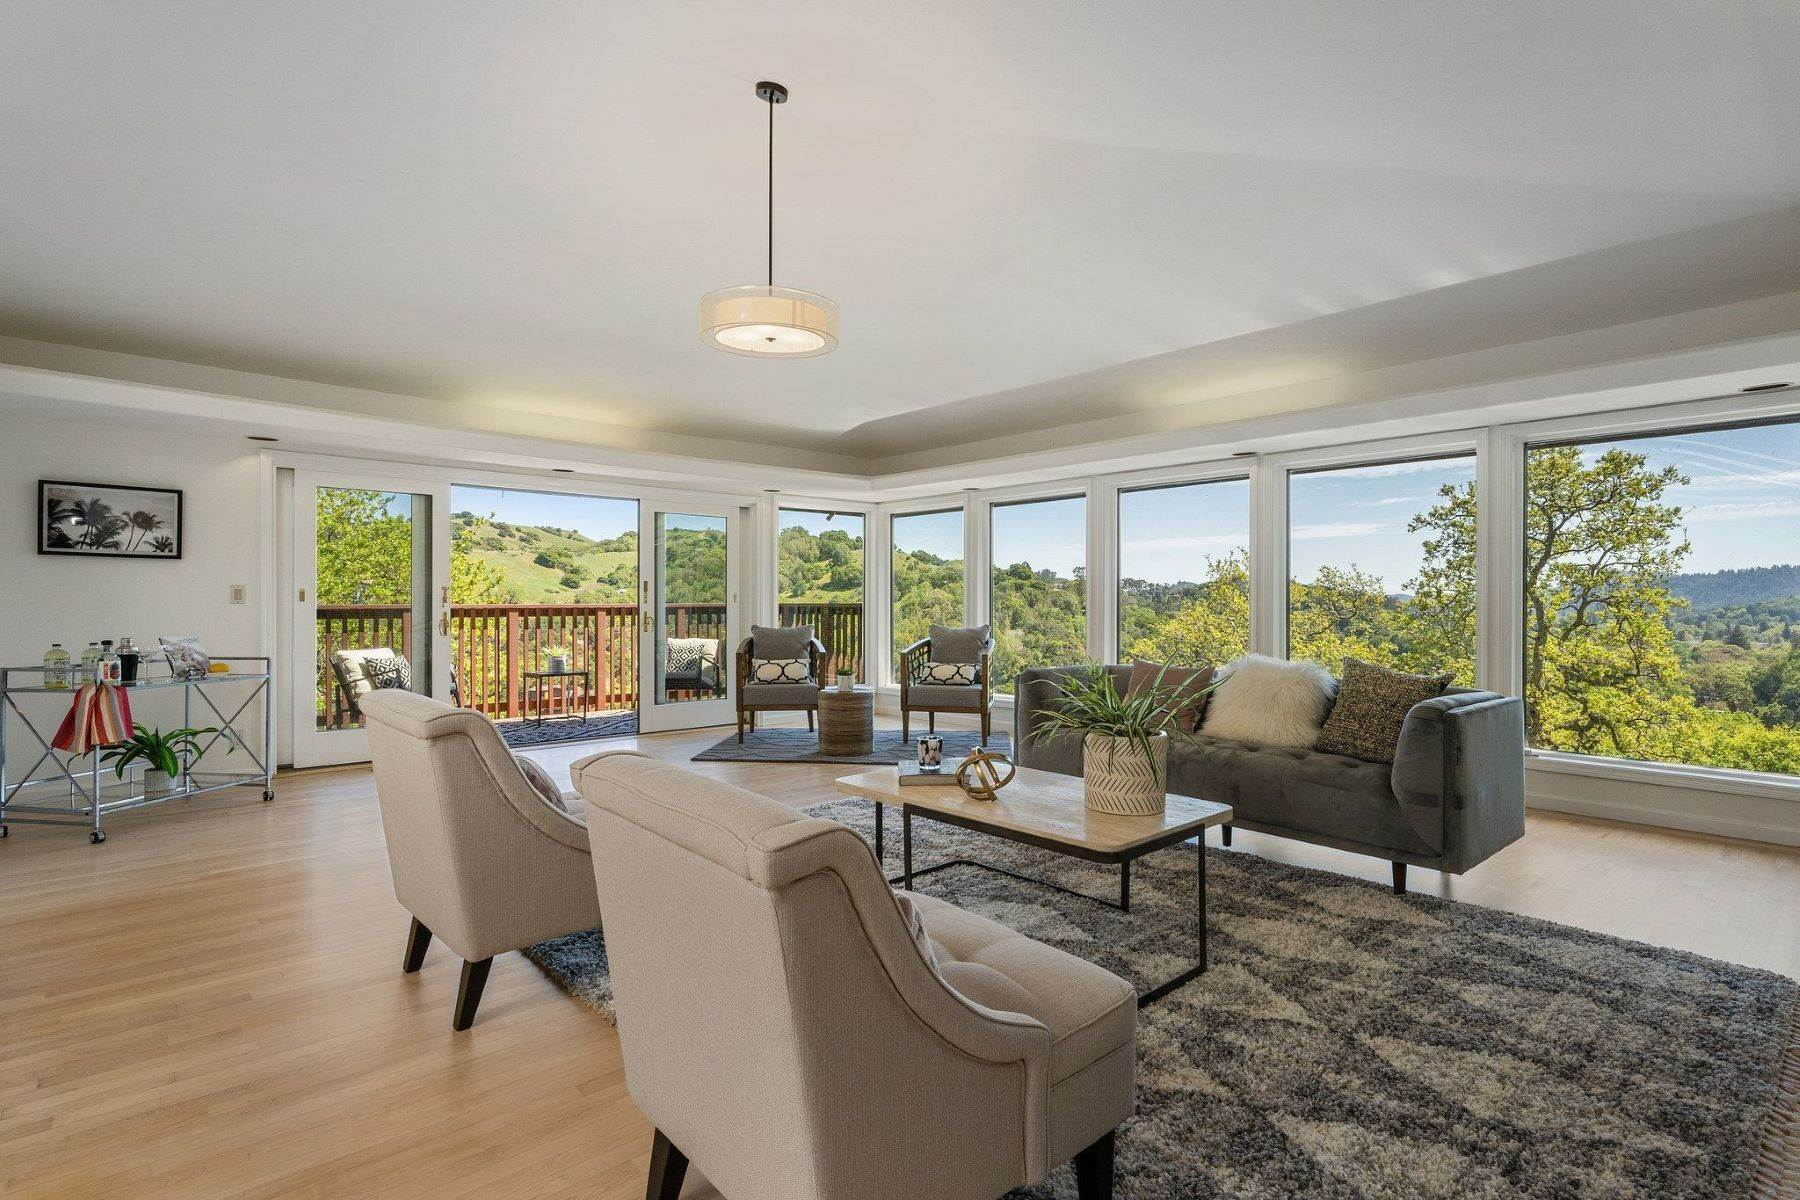 Single Family Homes for Sale at Large Home with Views for Days in Sleepy Hollow 48 Woodside Drive San Anselmo, California 94960 United States